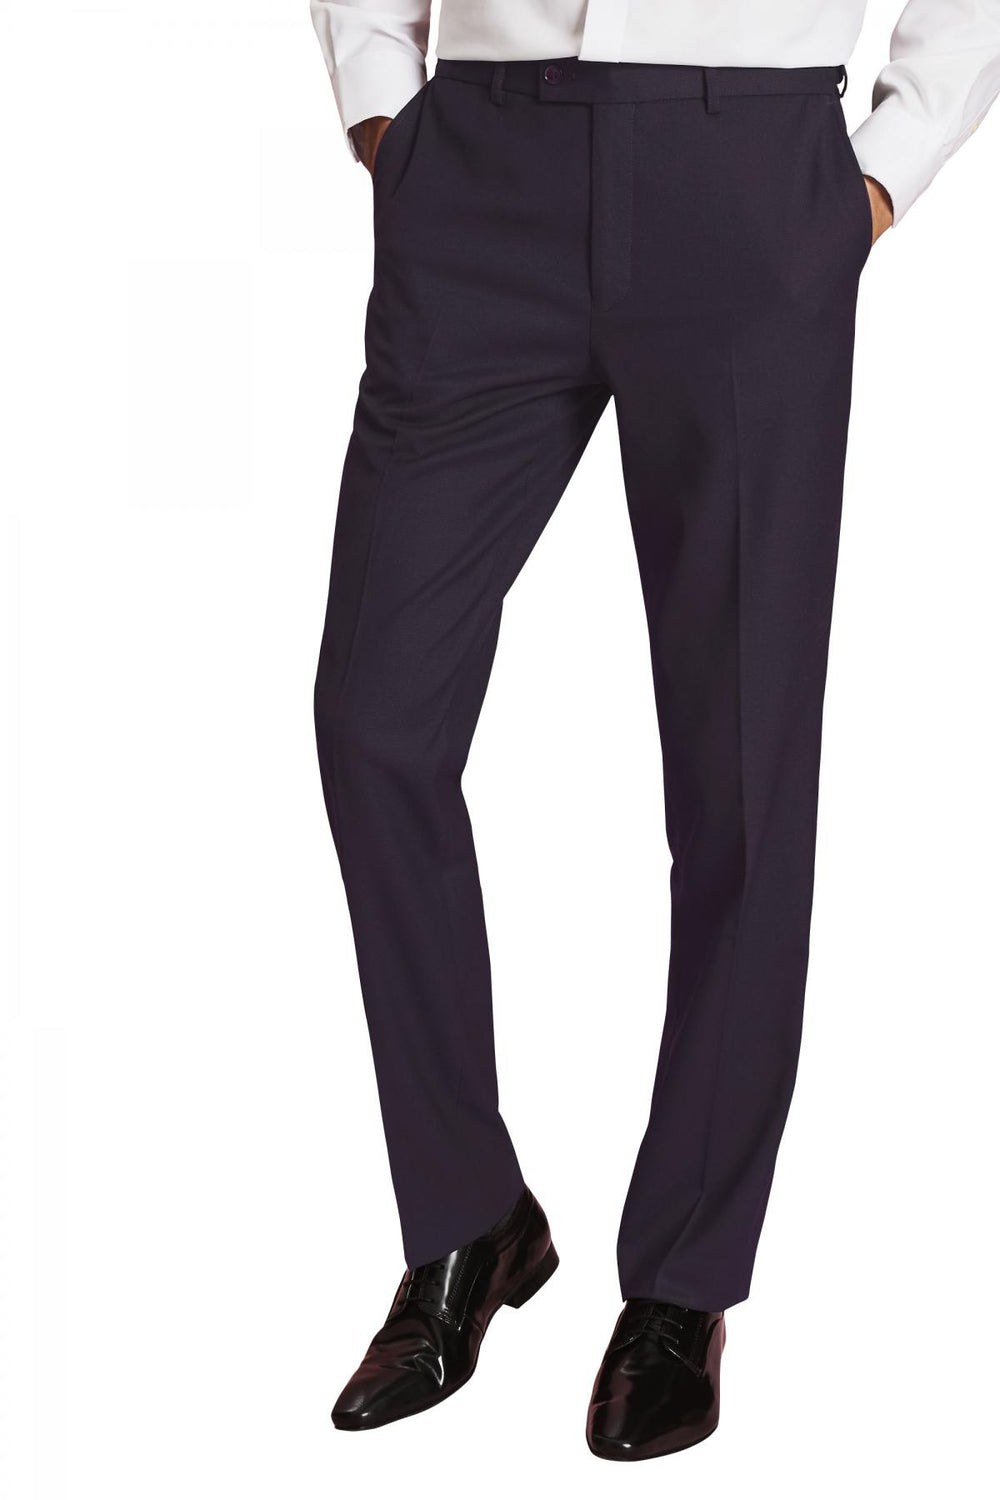 Contemporary Modern Fit Trouser